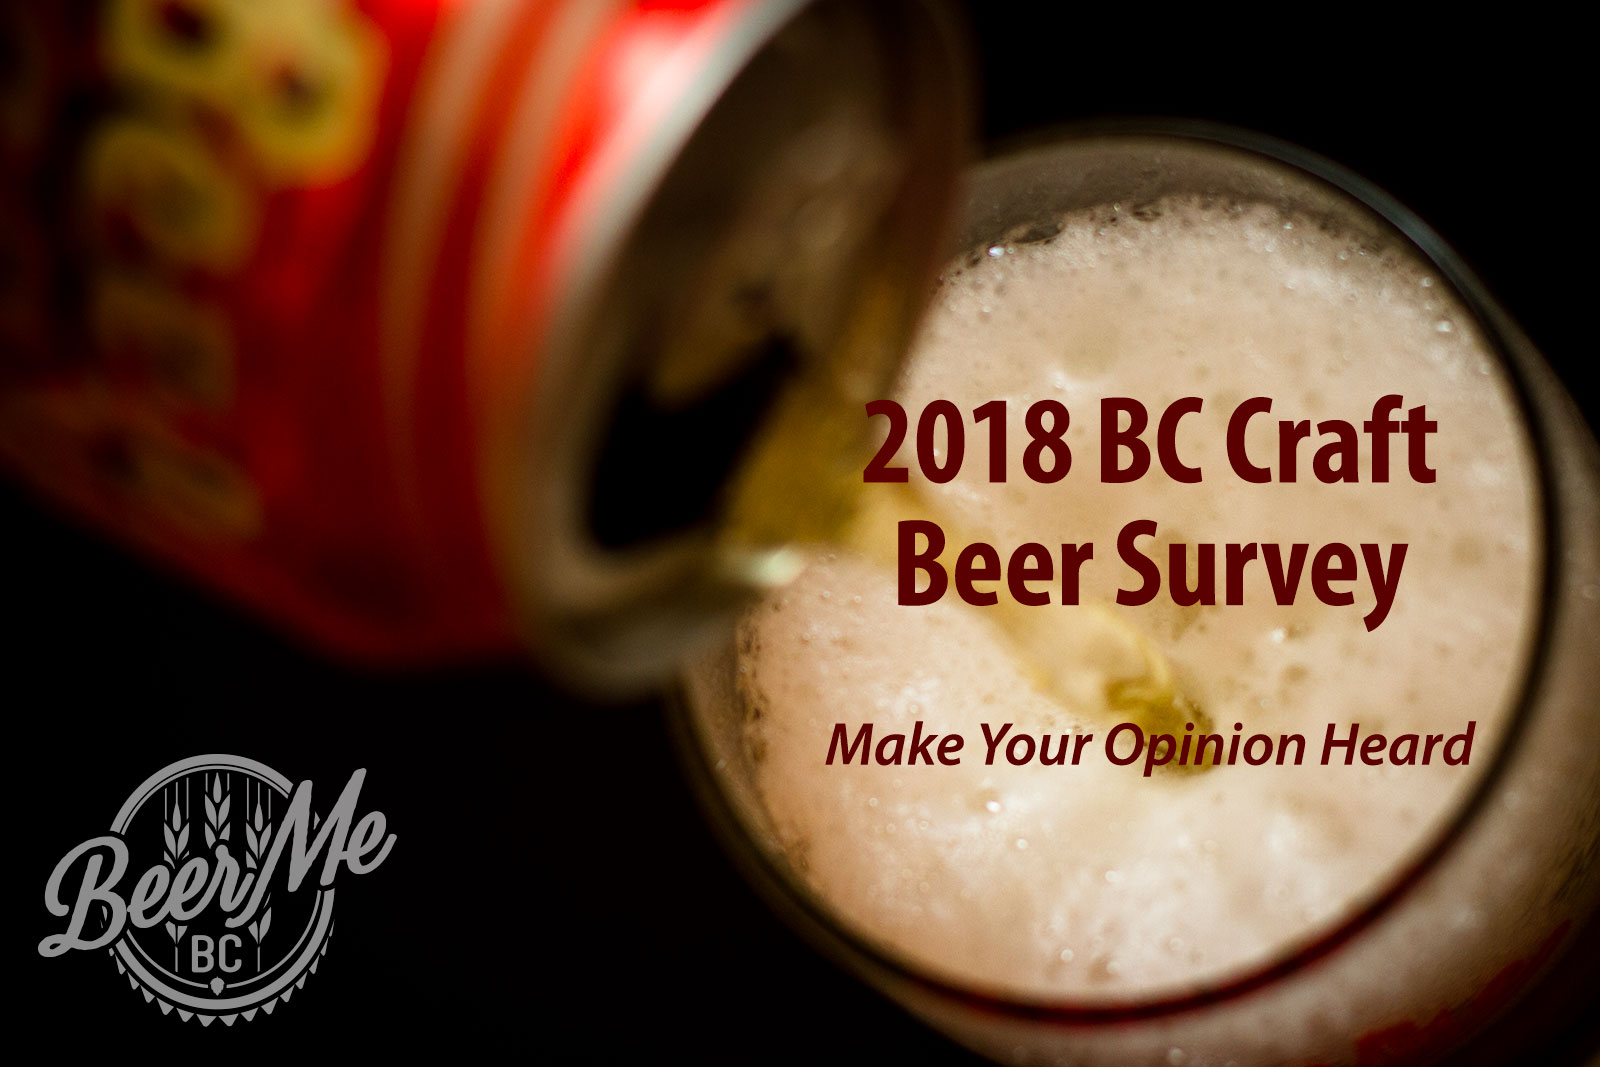 6th Annual Beer Me BC Craft Beer Survey Released